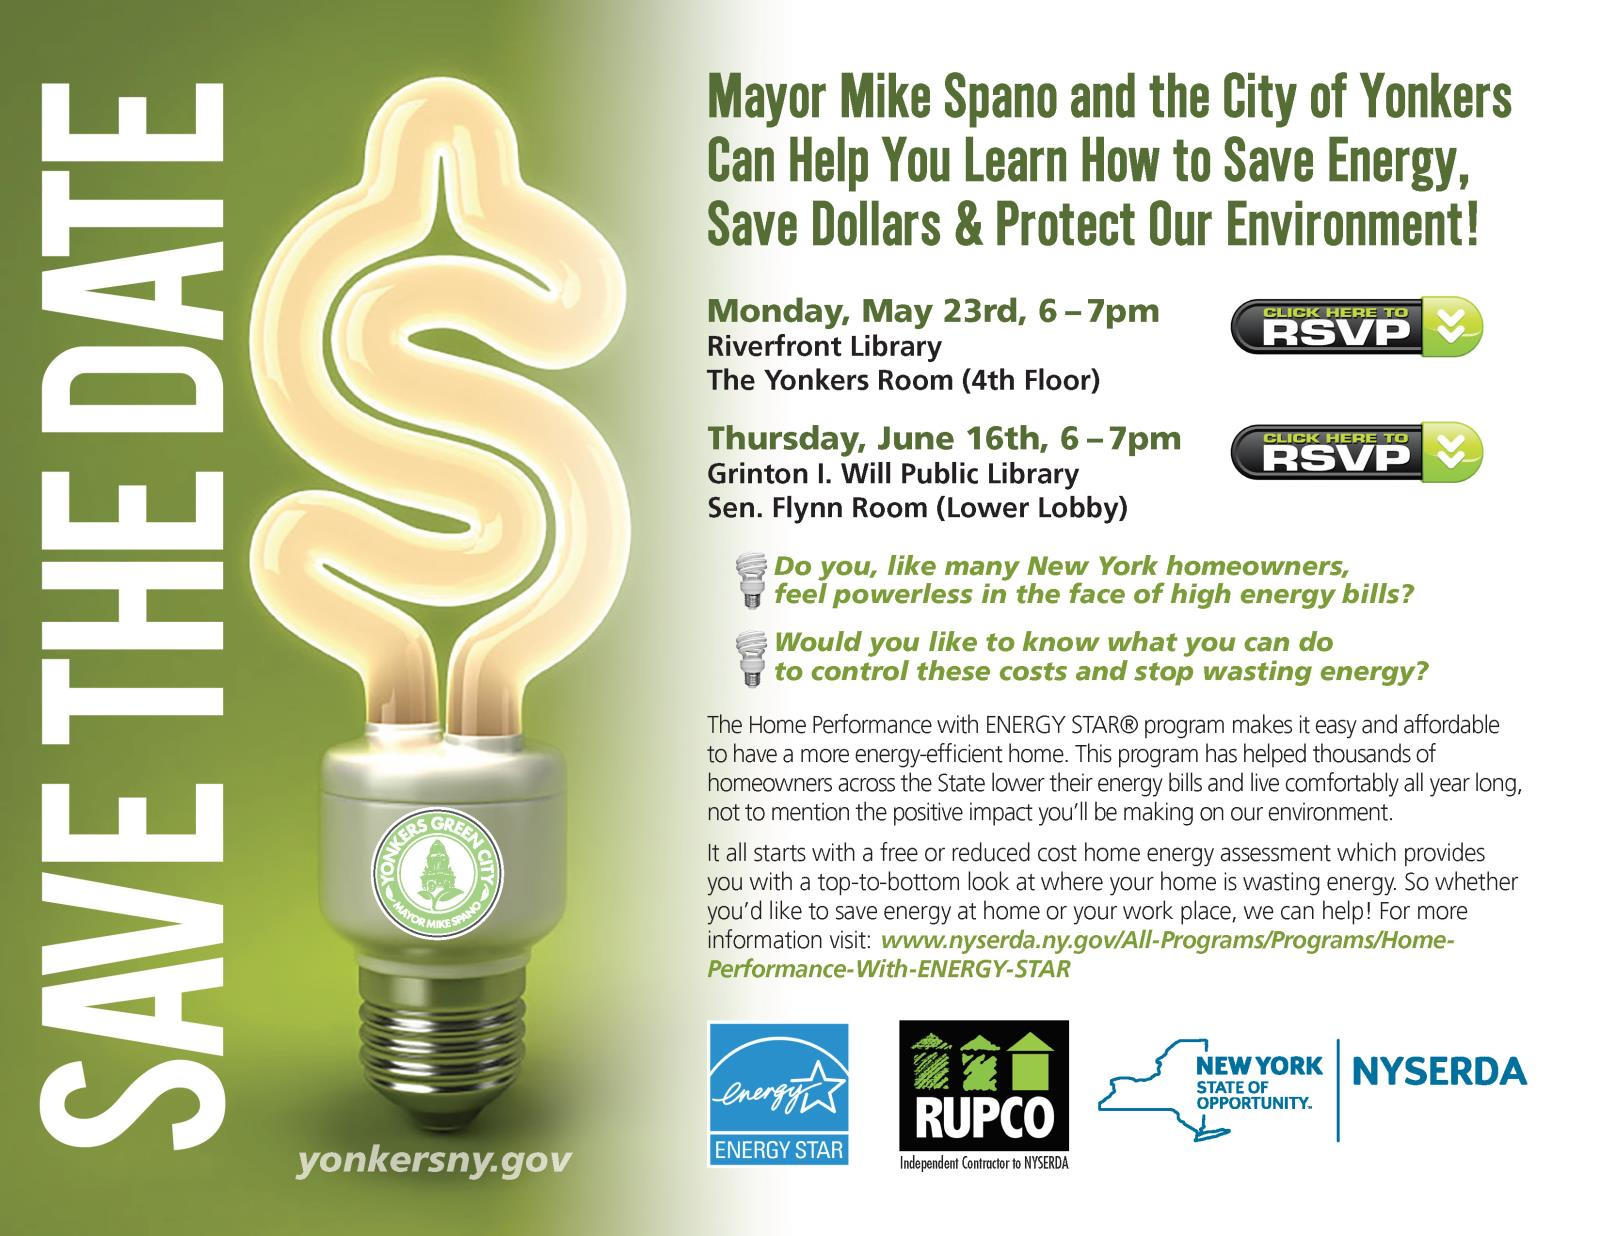 Save the Date-COY Energy Saving